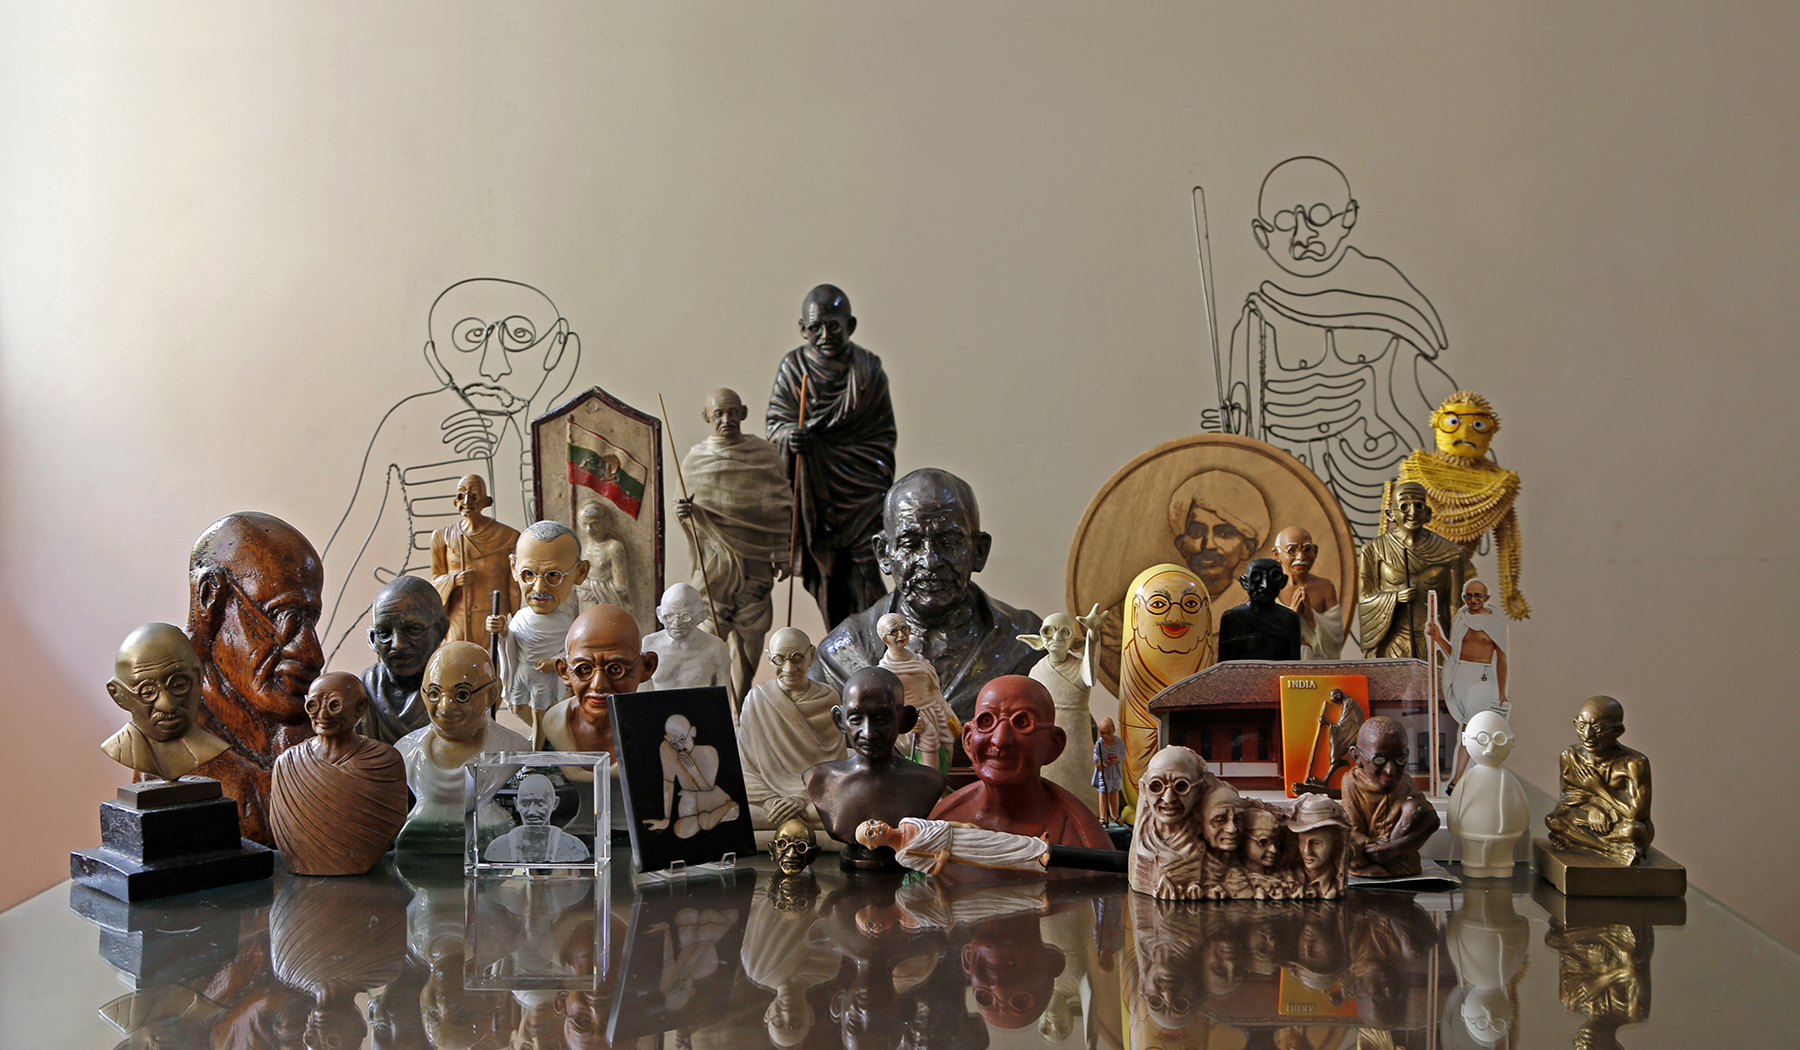 My Experiments with Kitsch: A collector's search for Mahatma Gandhi